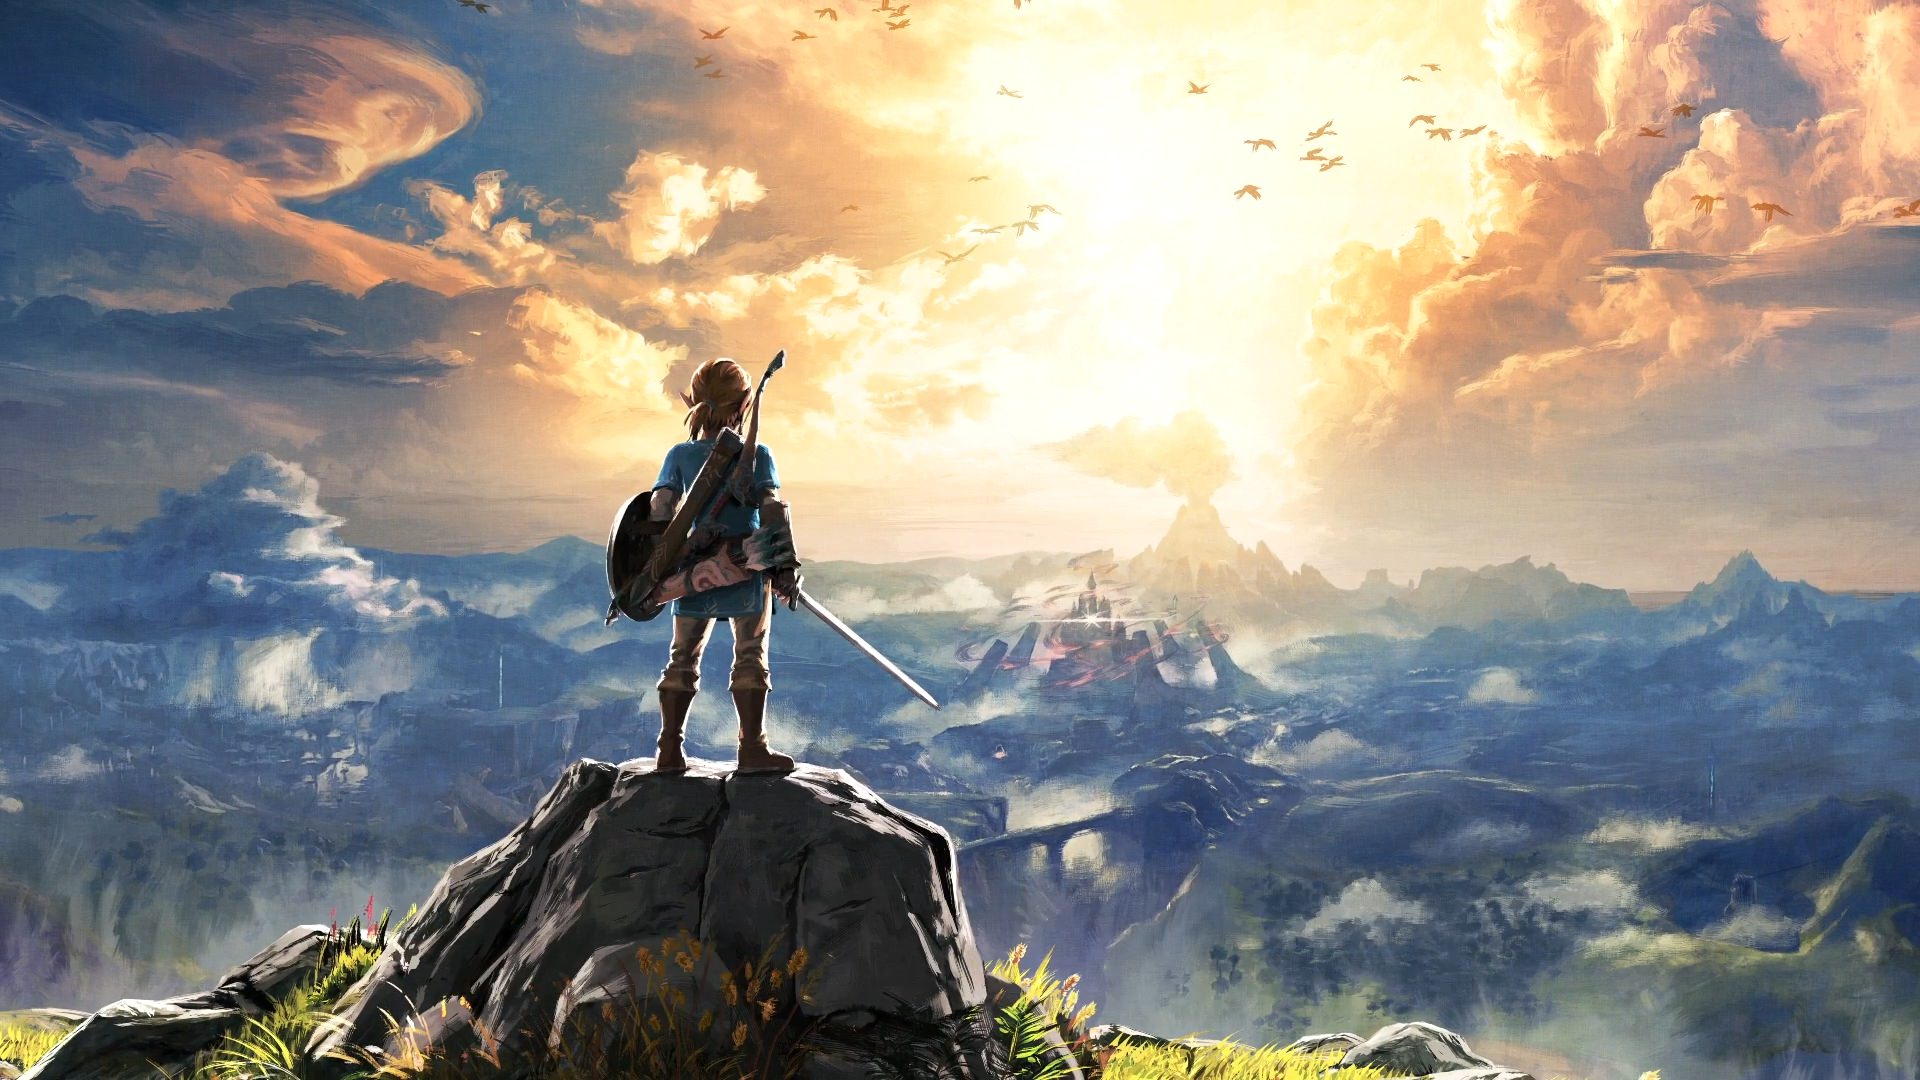 بررسی بازی The Legend of Zelda: Breath of the Wild